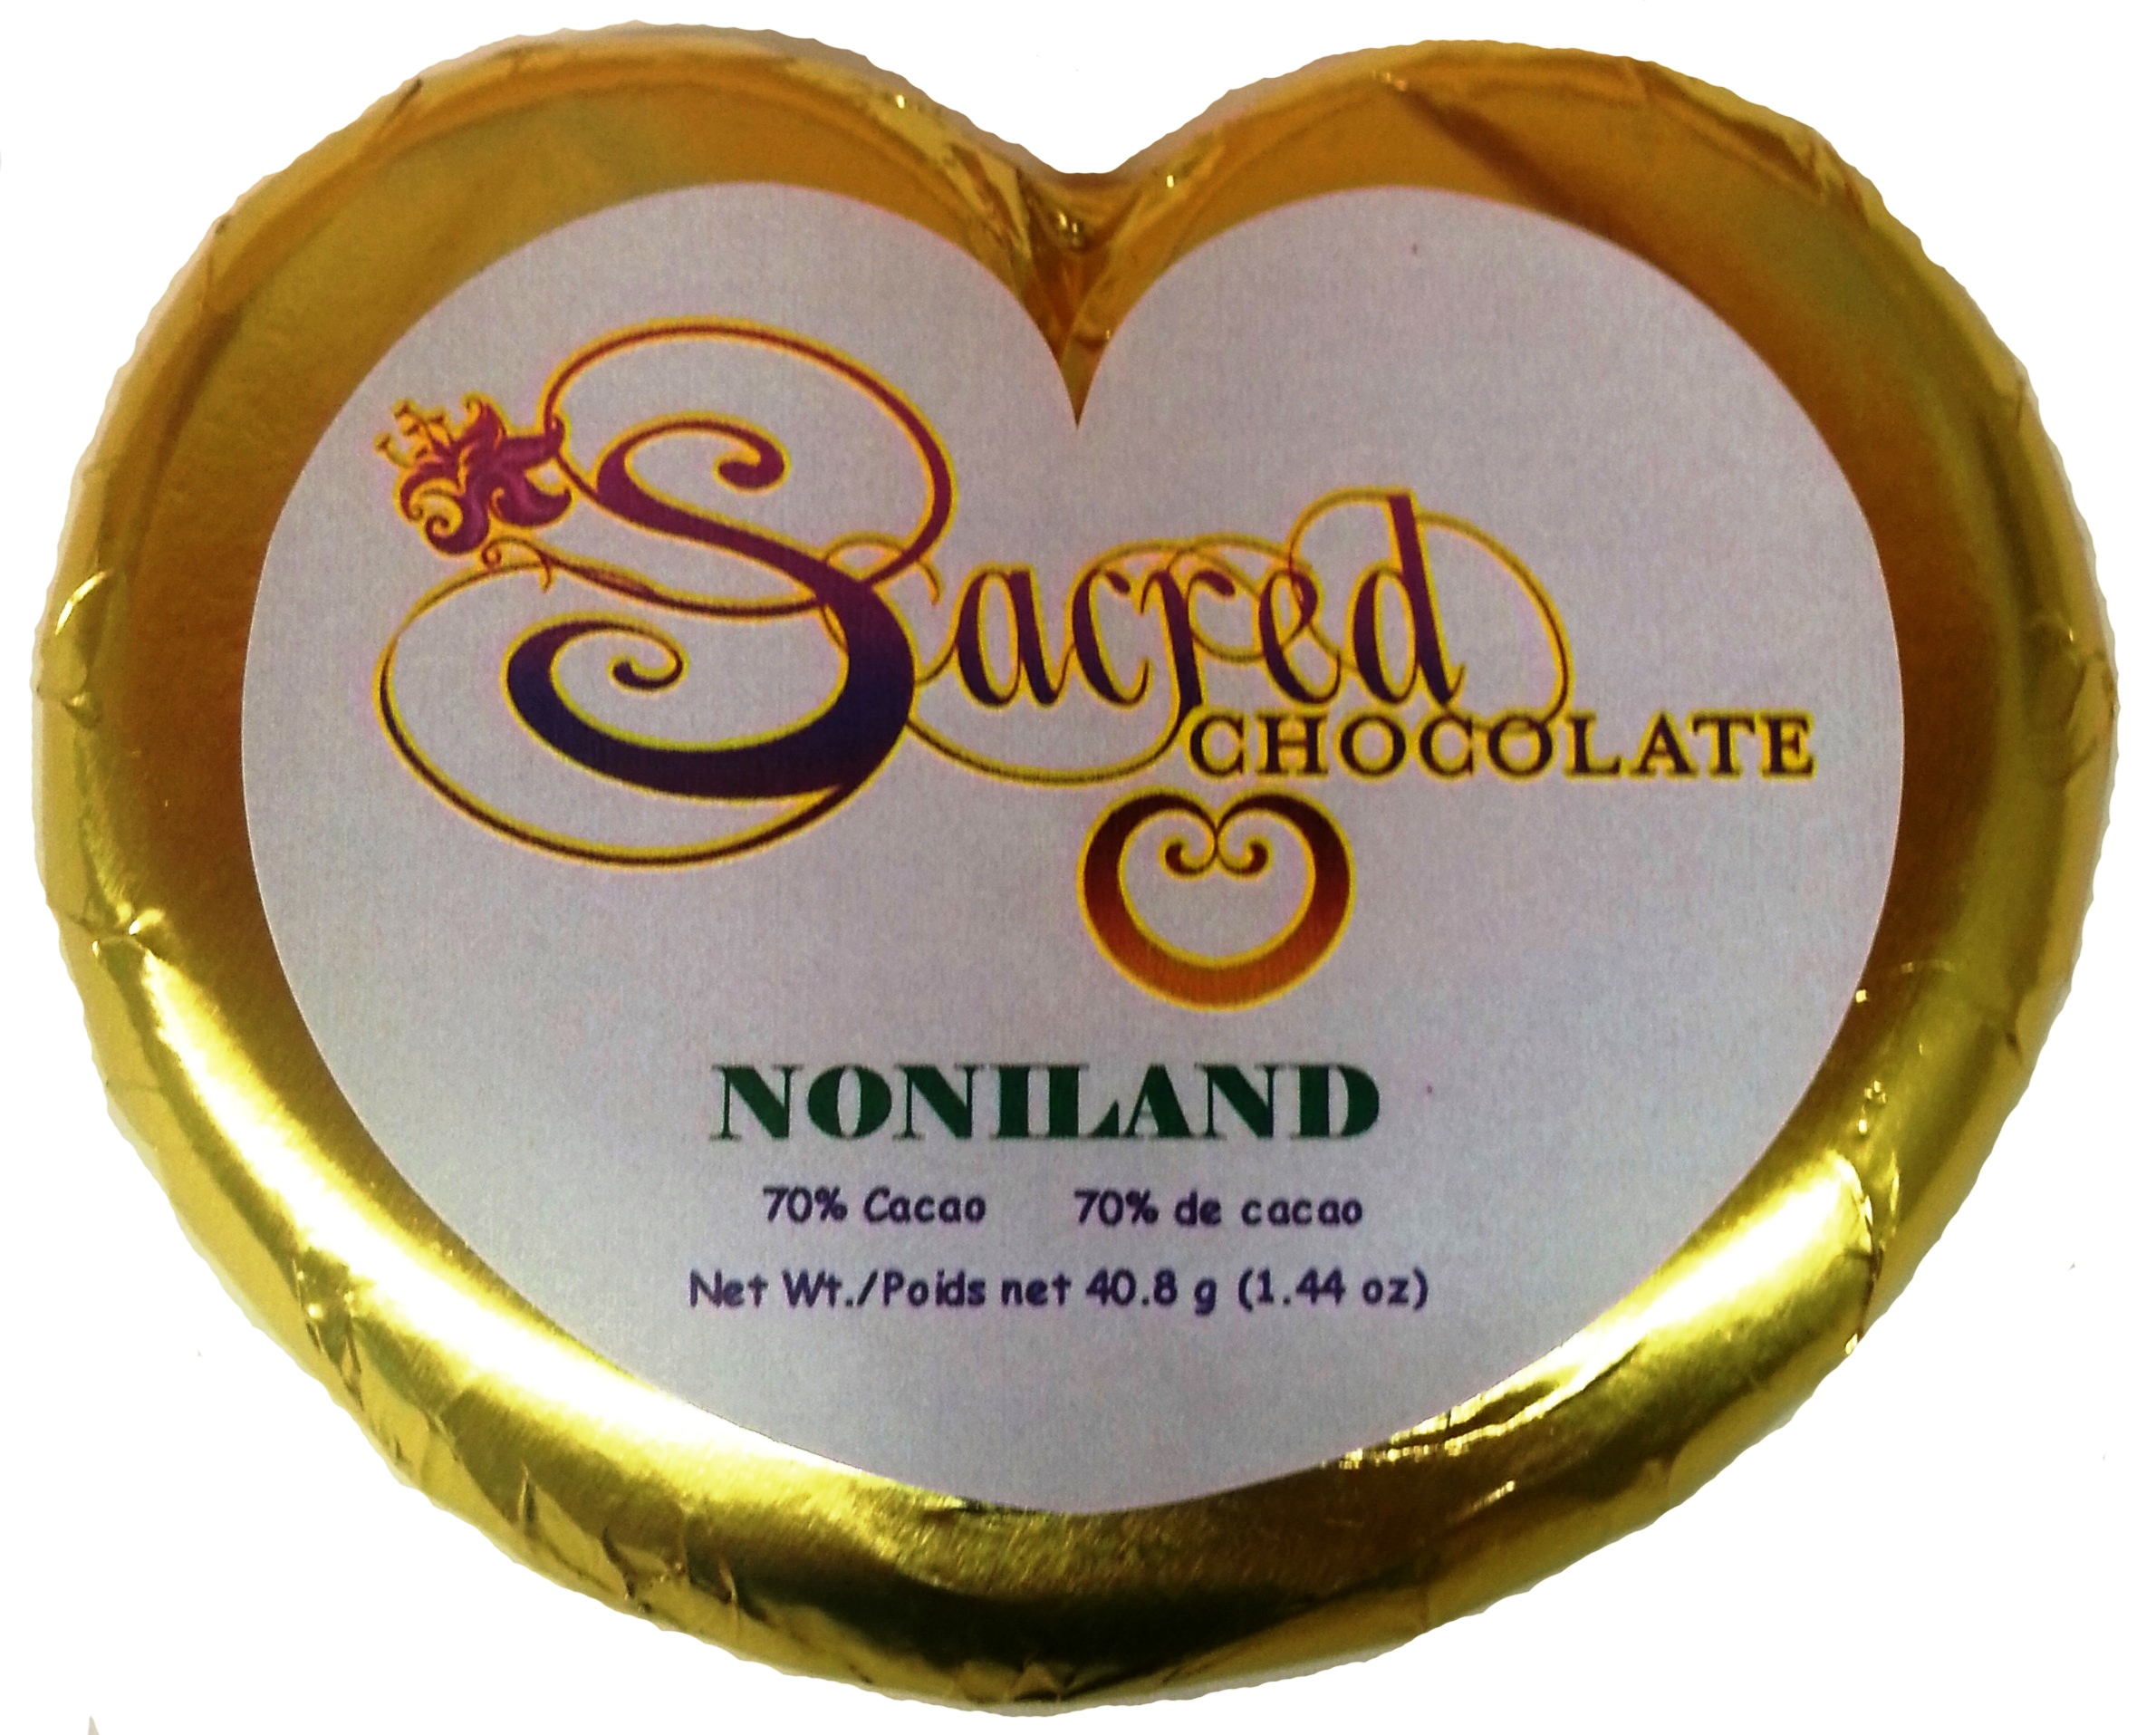 Noniland - 1.44oz Heart Bar